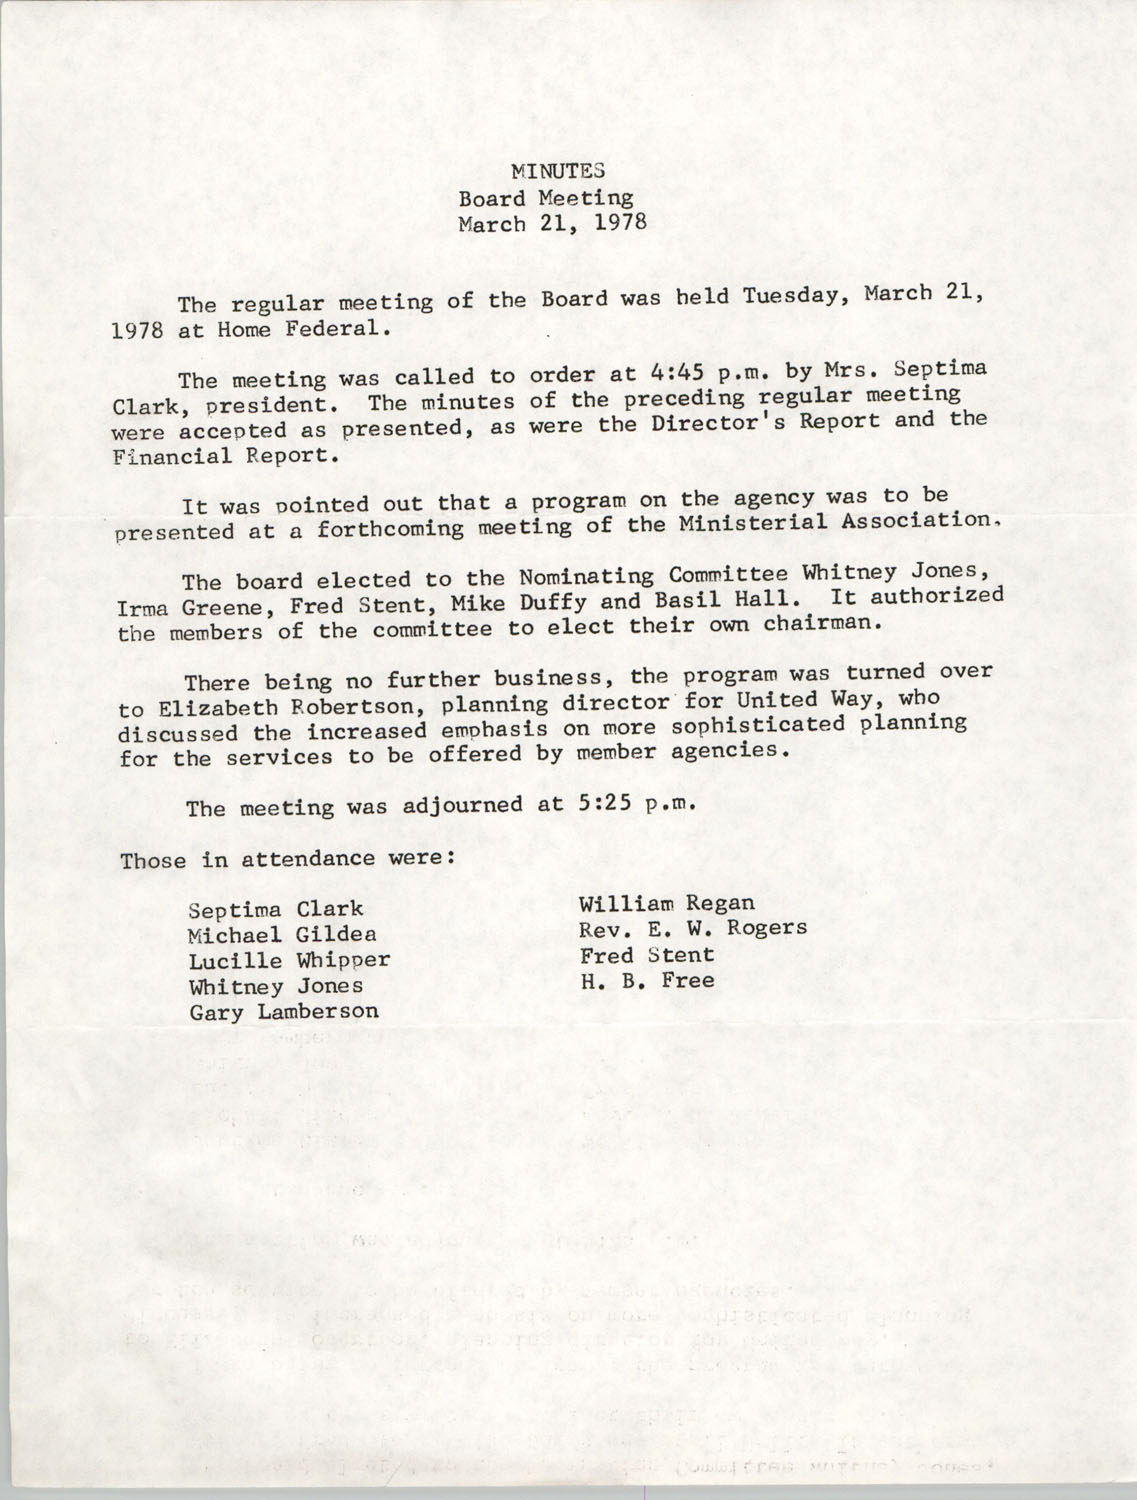 Minutes, Board Meeting, March 21, 1978